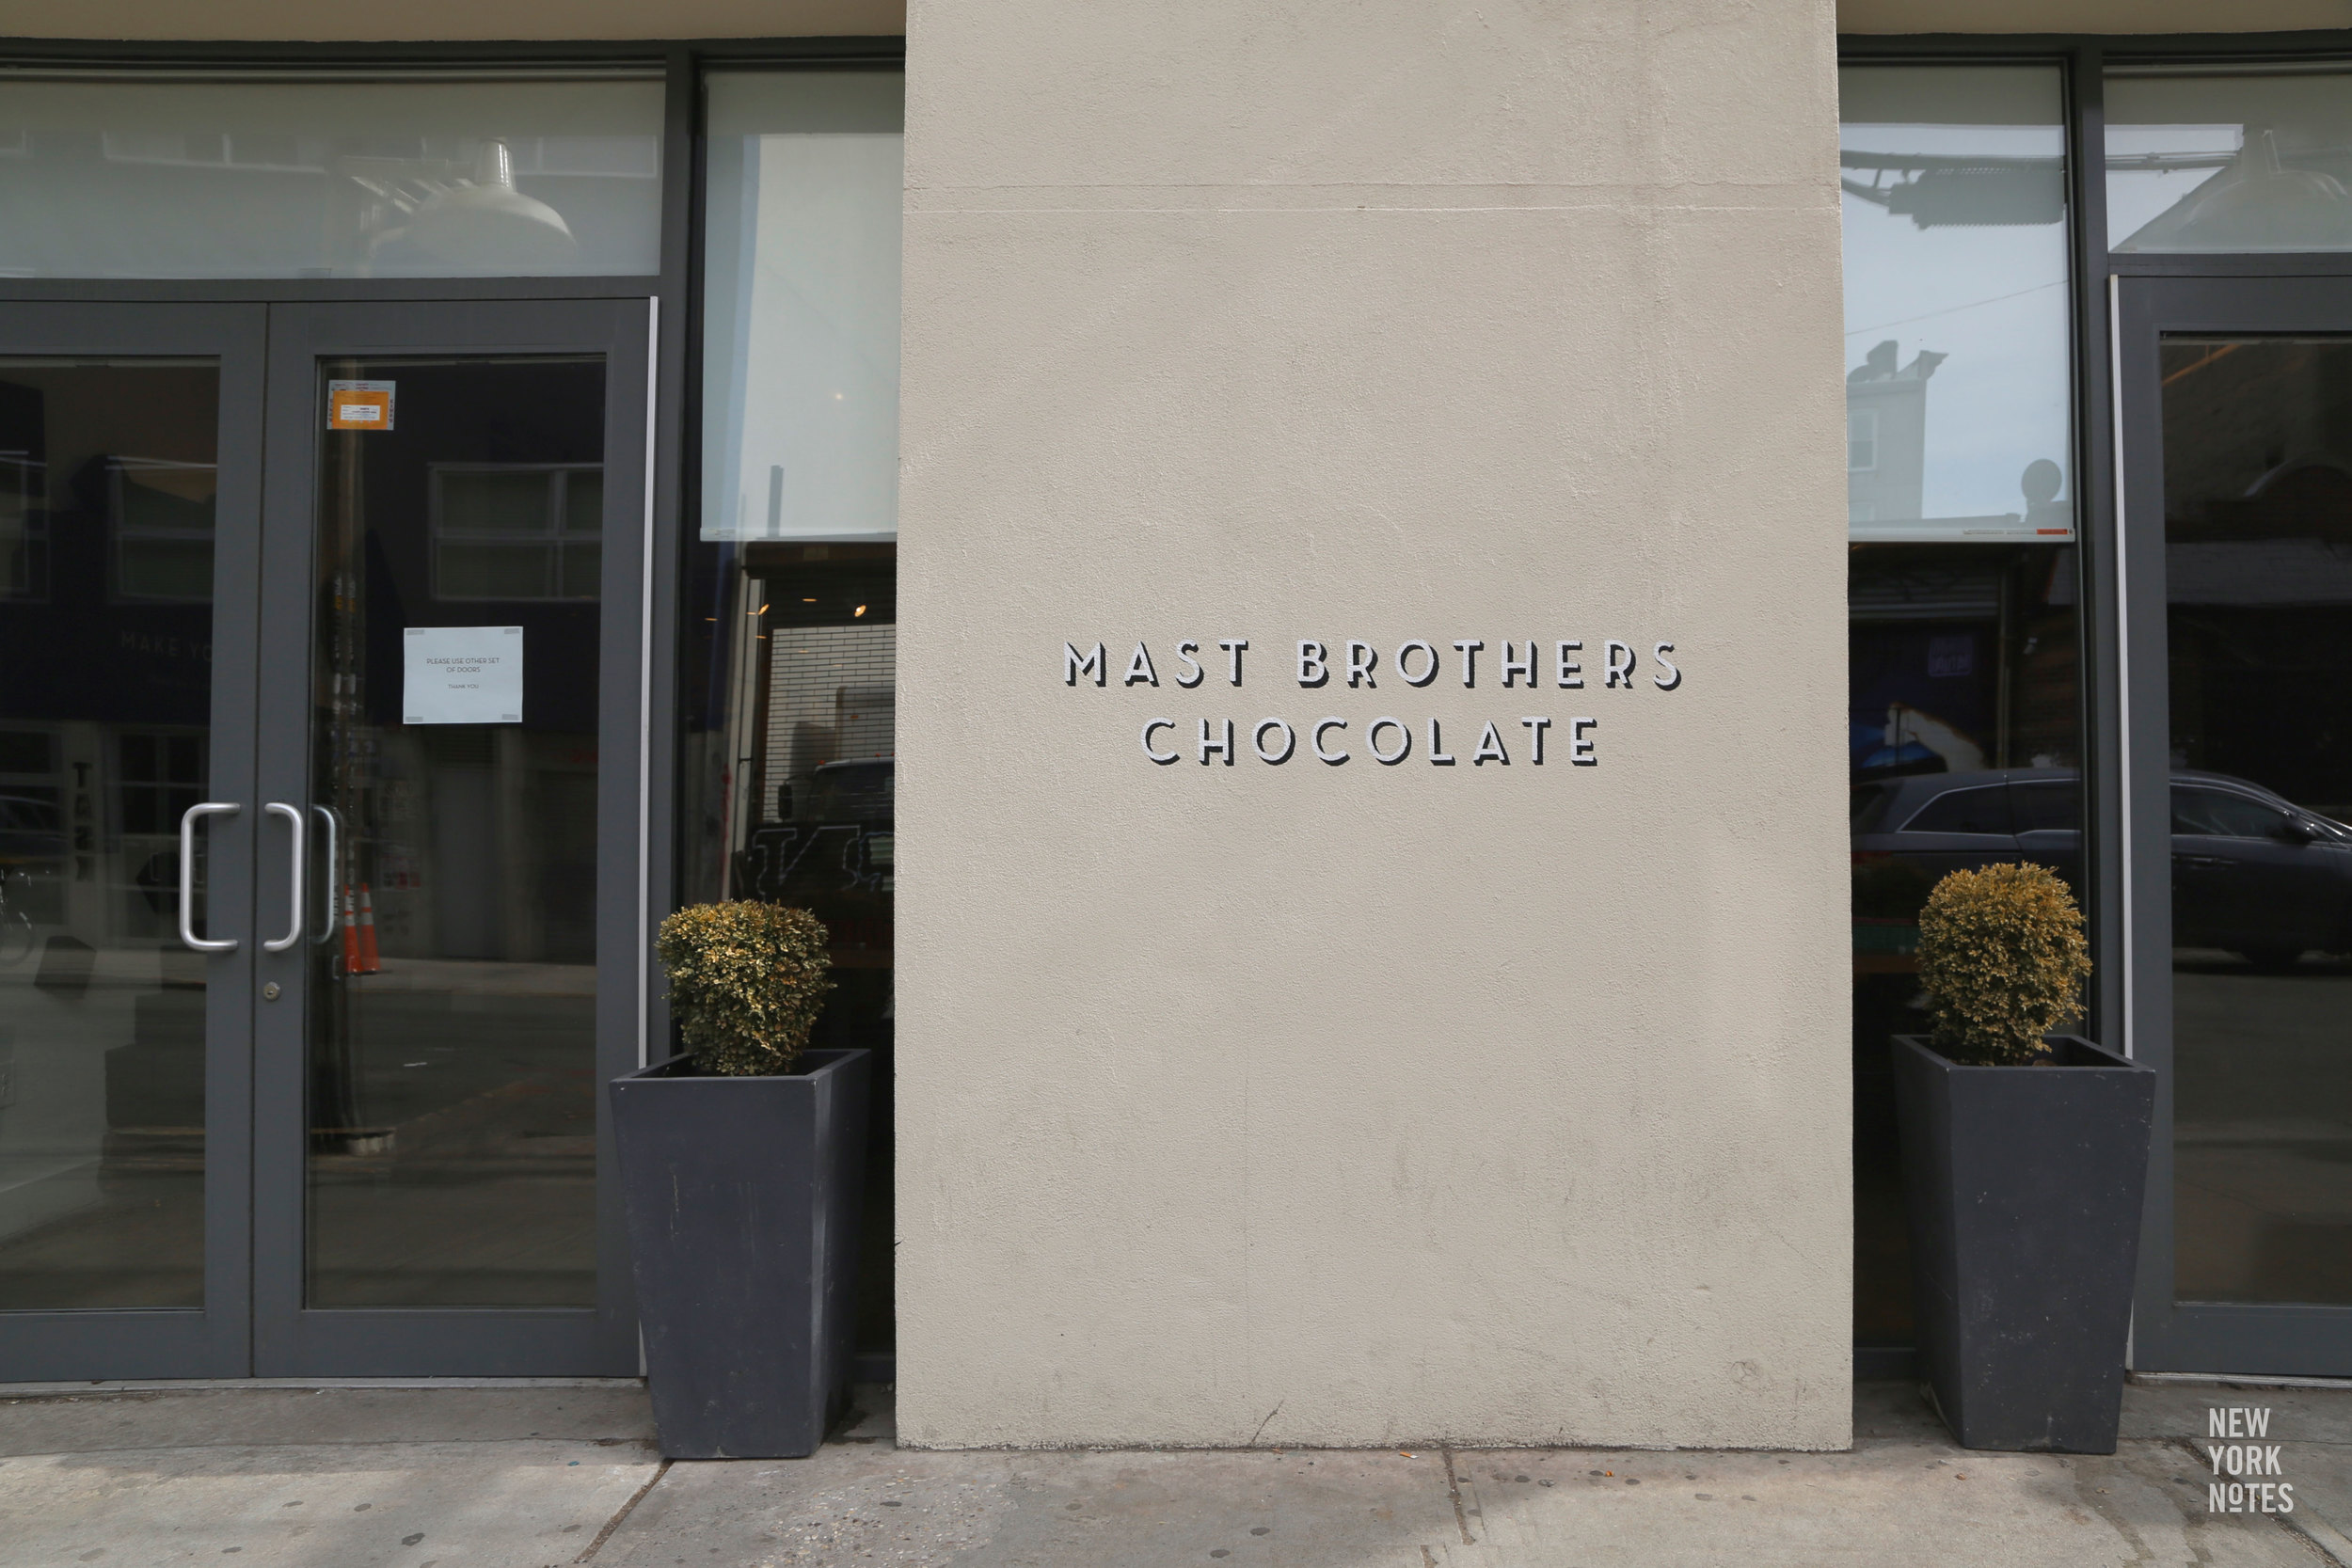 19.09.15 Depanneur, Mast Brothers and Sketchbook